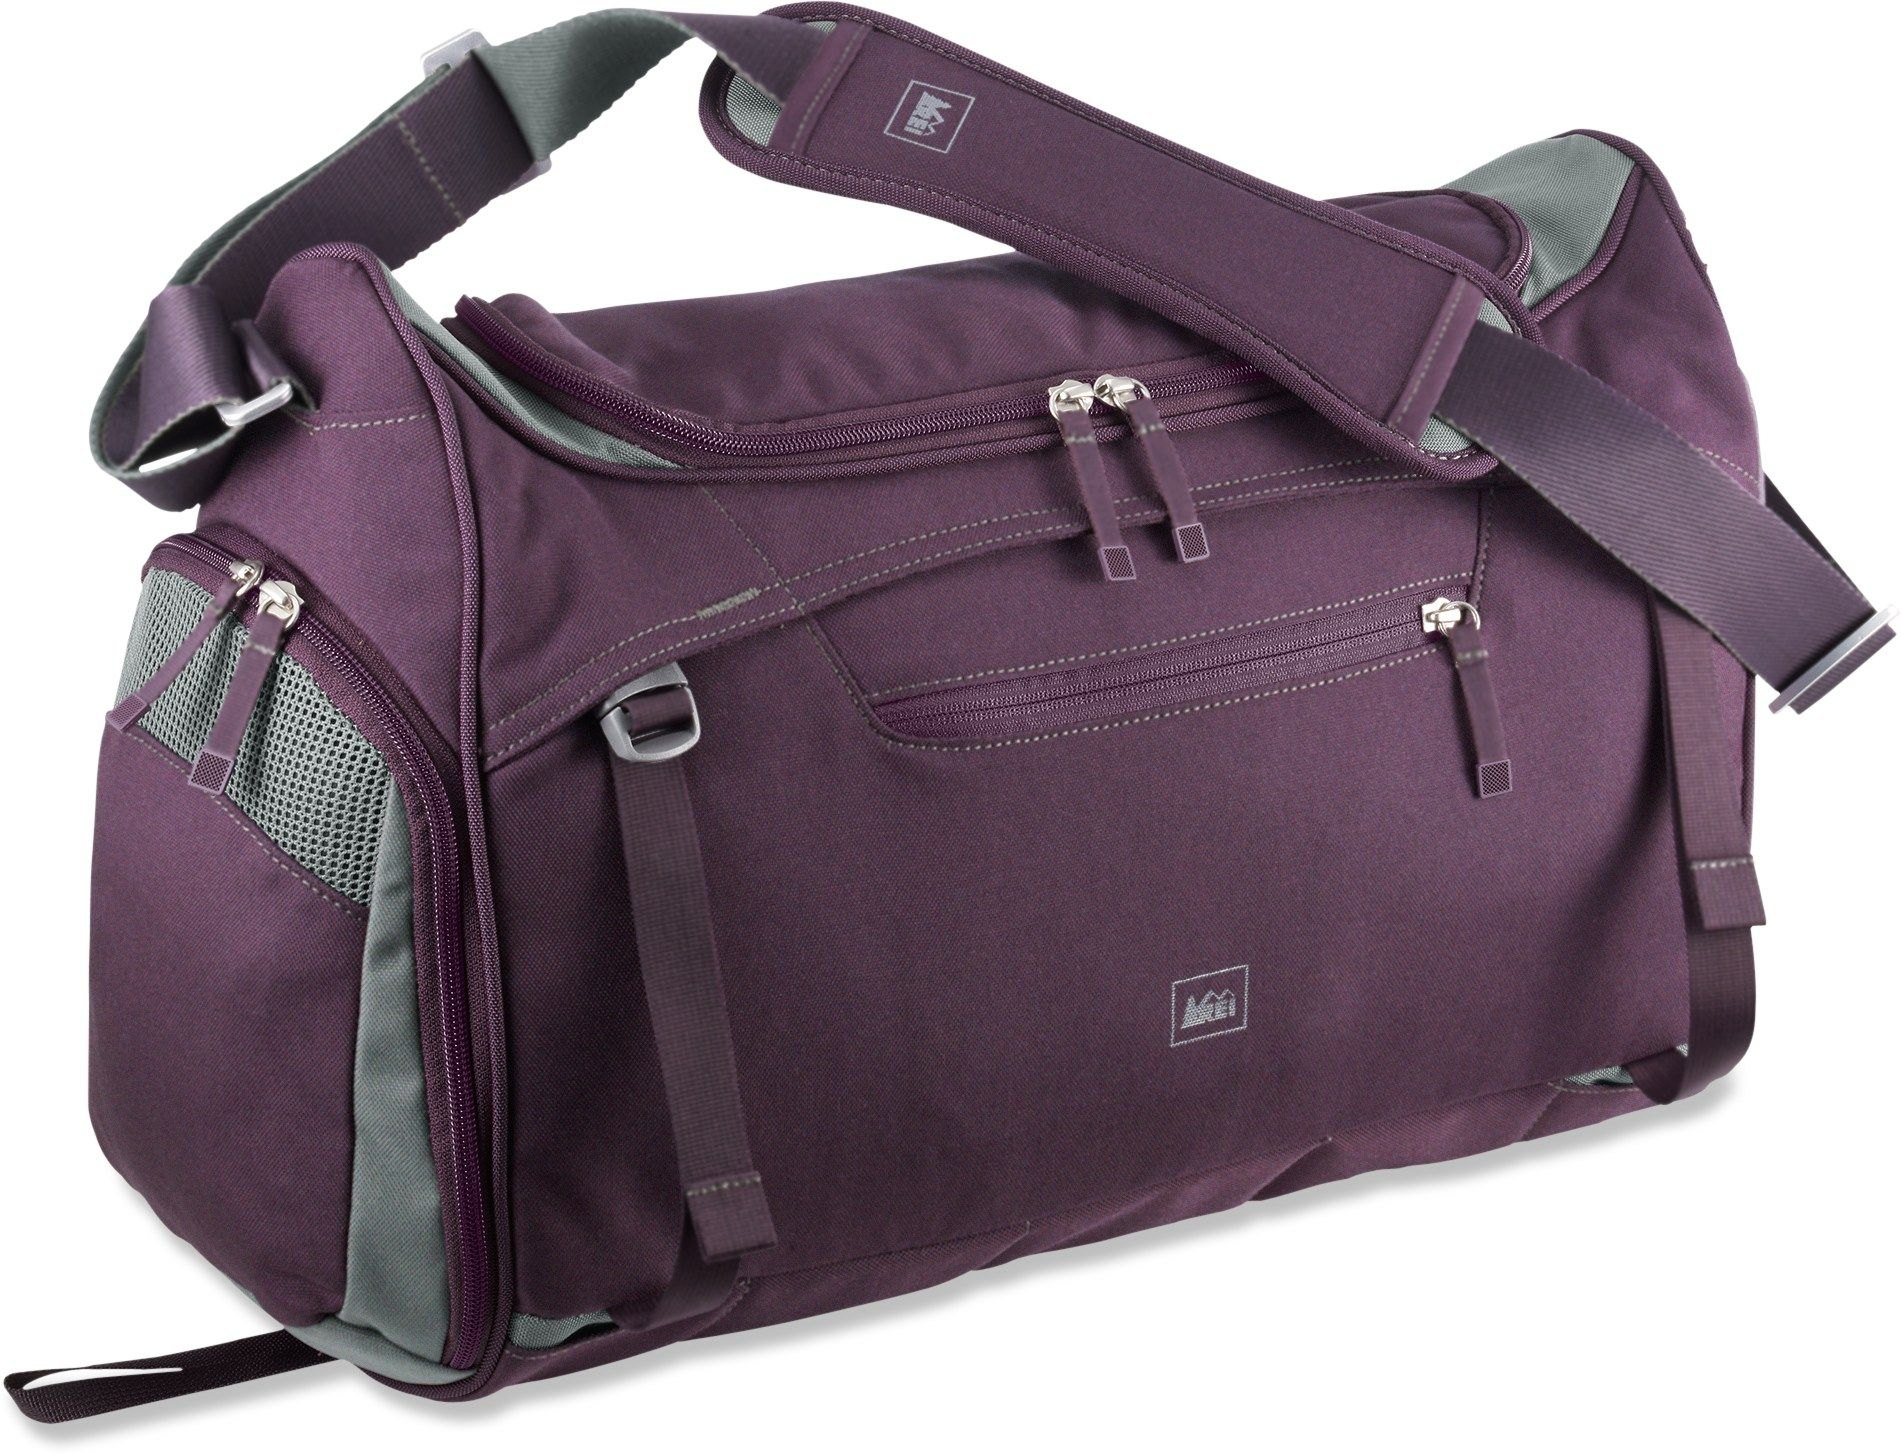 b792abb6c20d  39.73 - REI Balance Gym Bag - Women s - Special Buy at REI-OUTLET ...